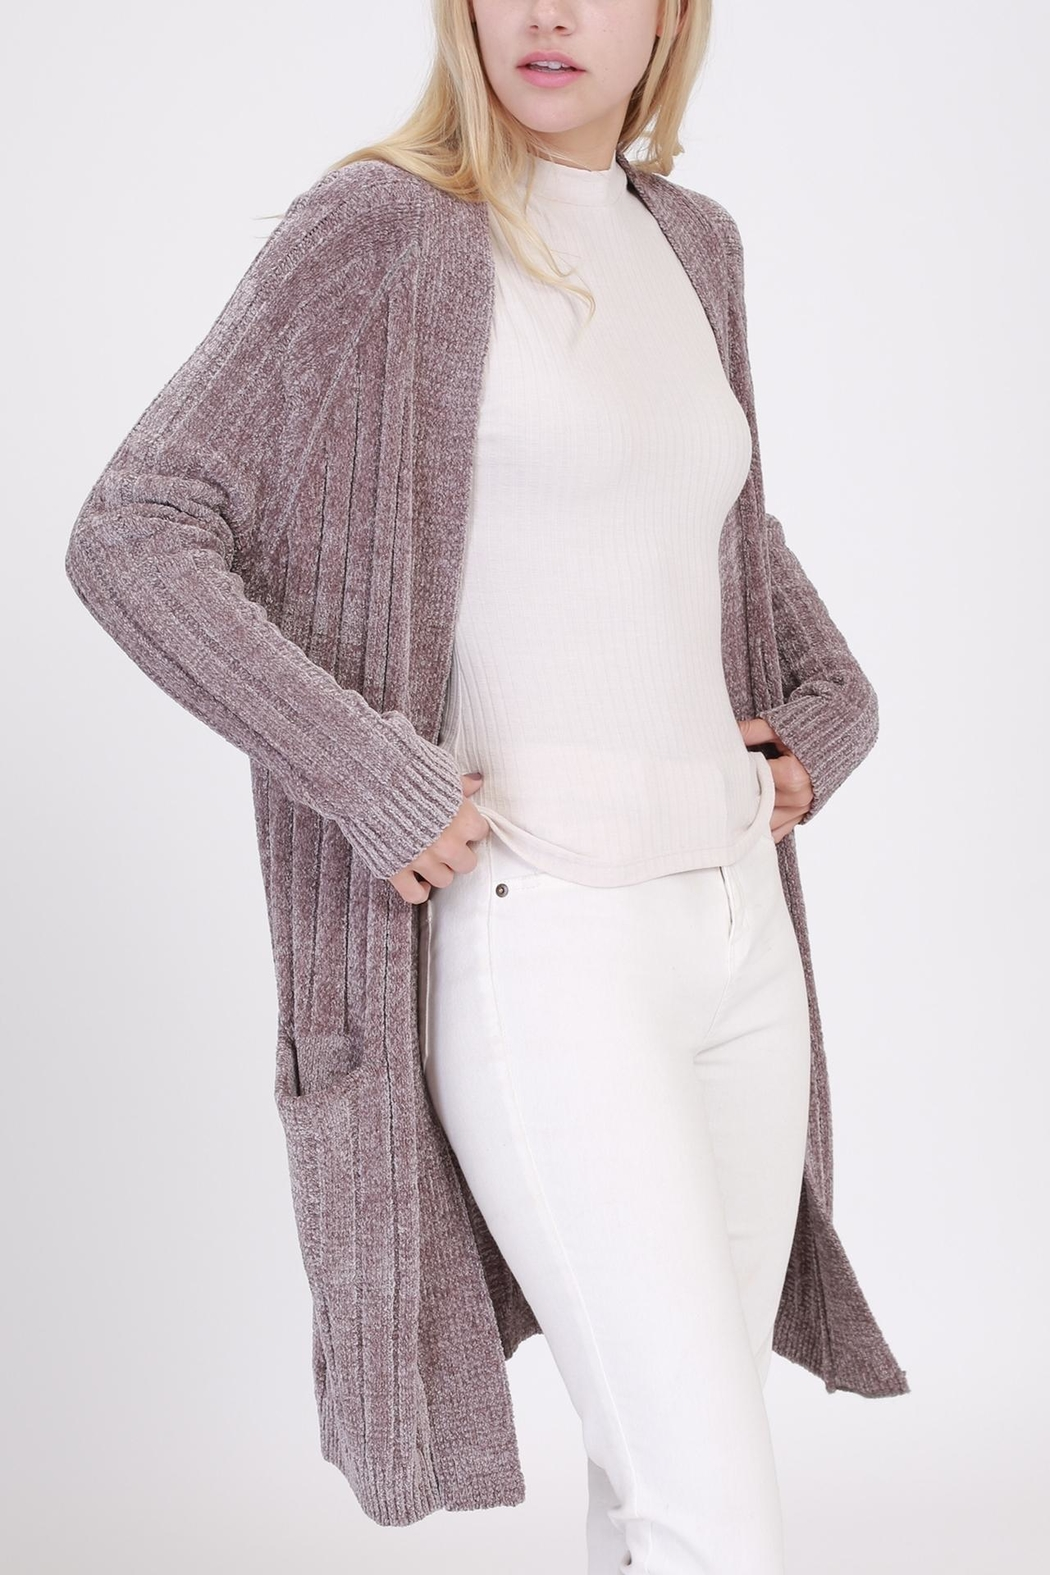 Find great deals on eBay for chenille cardigan. Shop with confidence.